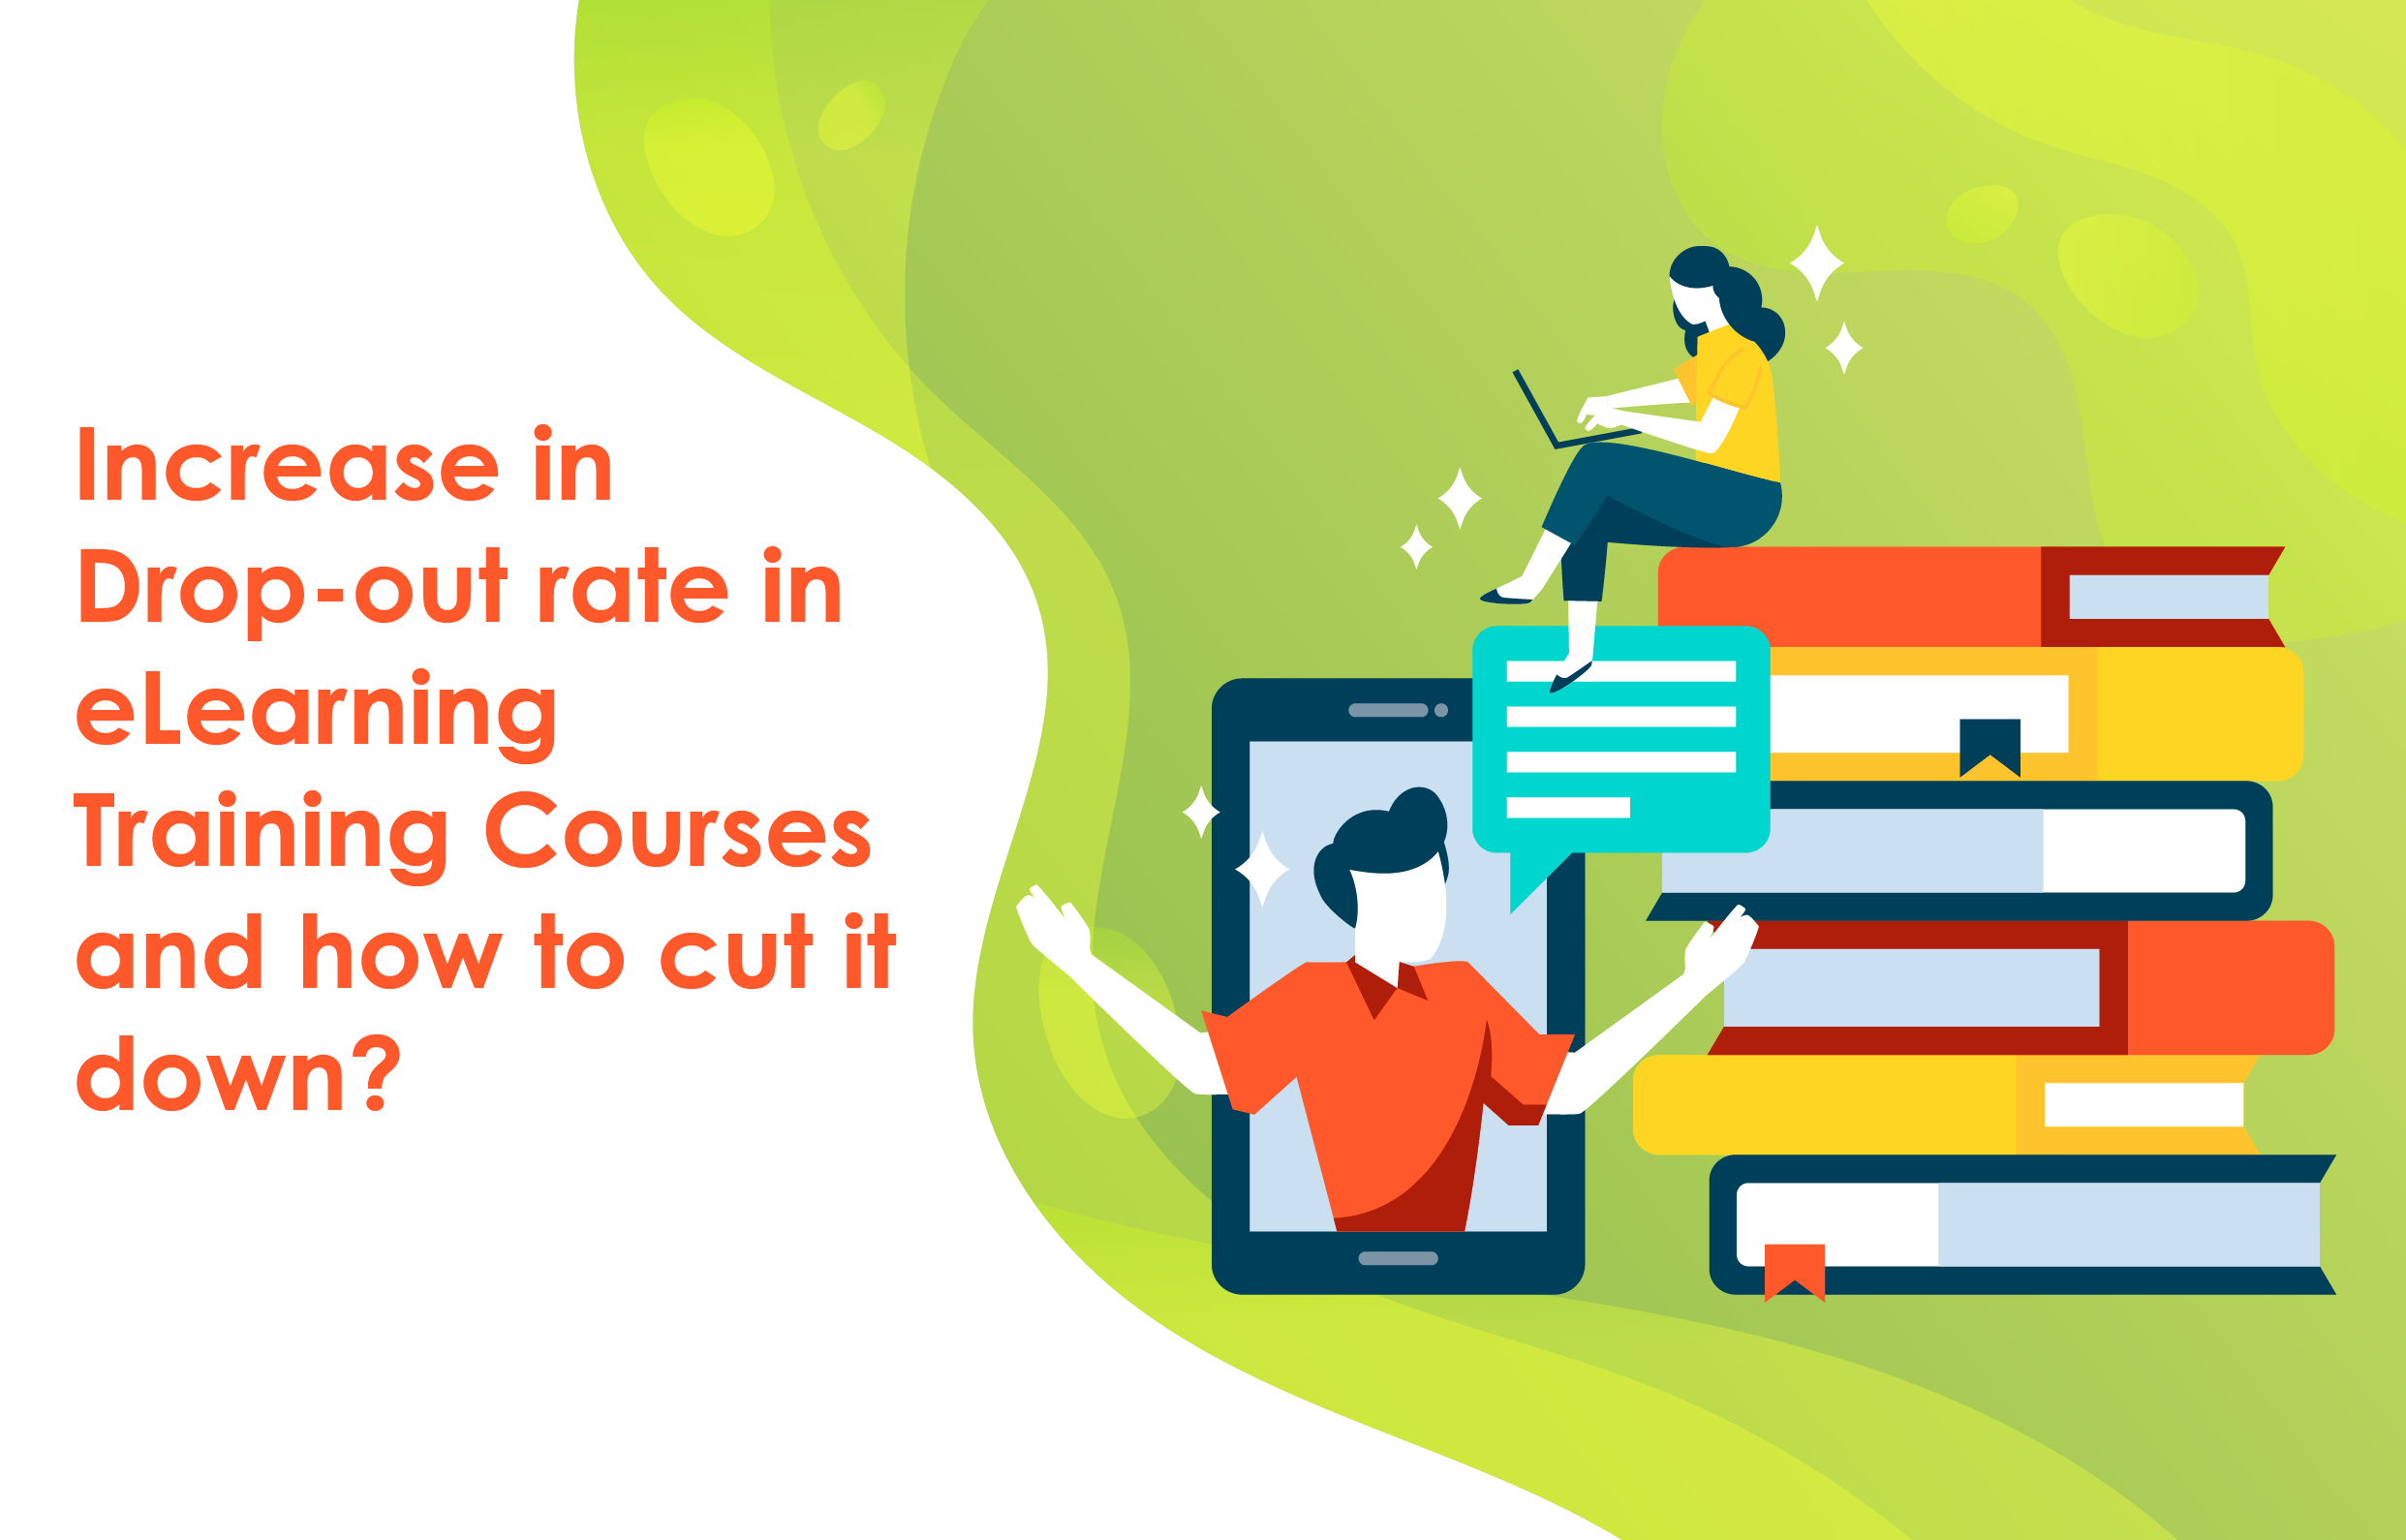 Increase in Drop-out Rate in eLearning Training Courses and How to Cut it Down?